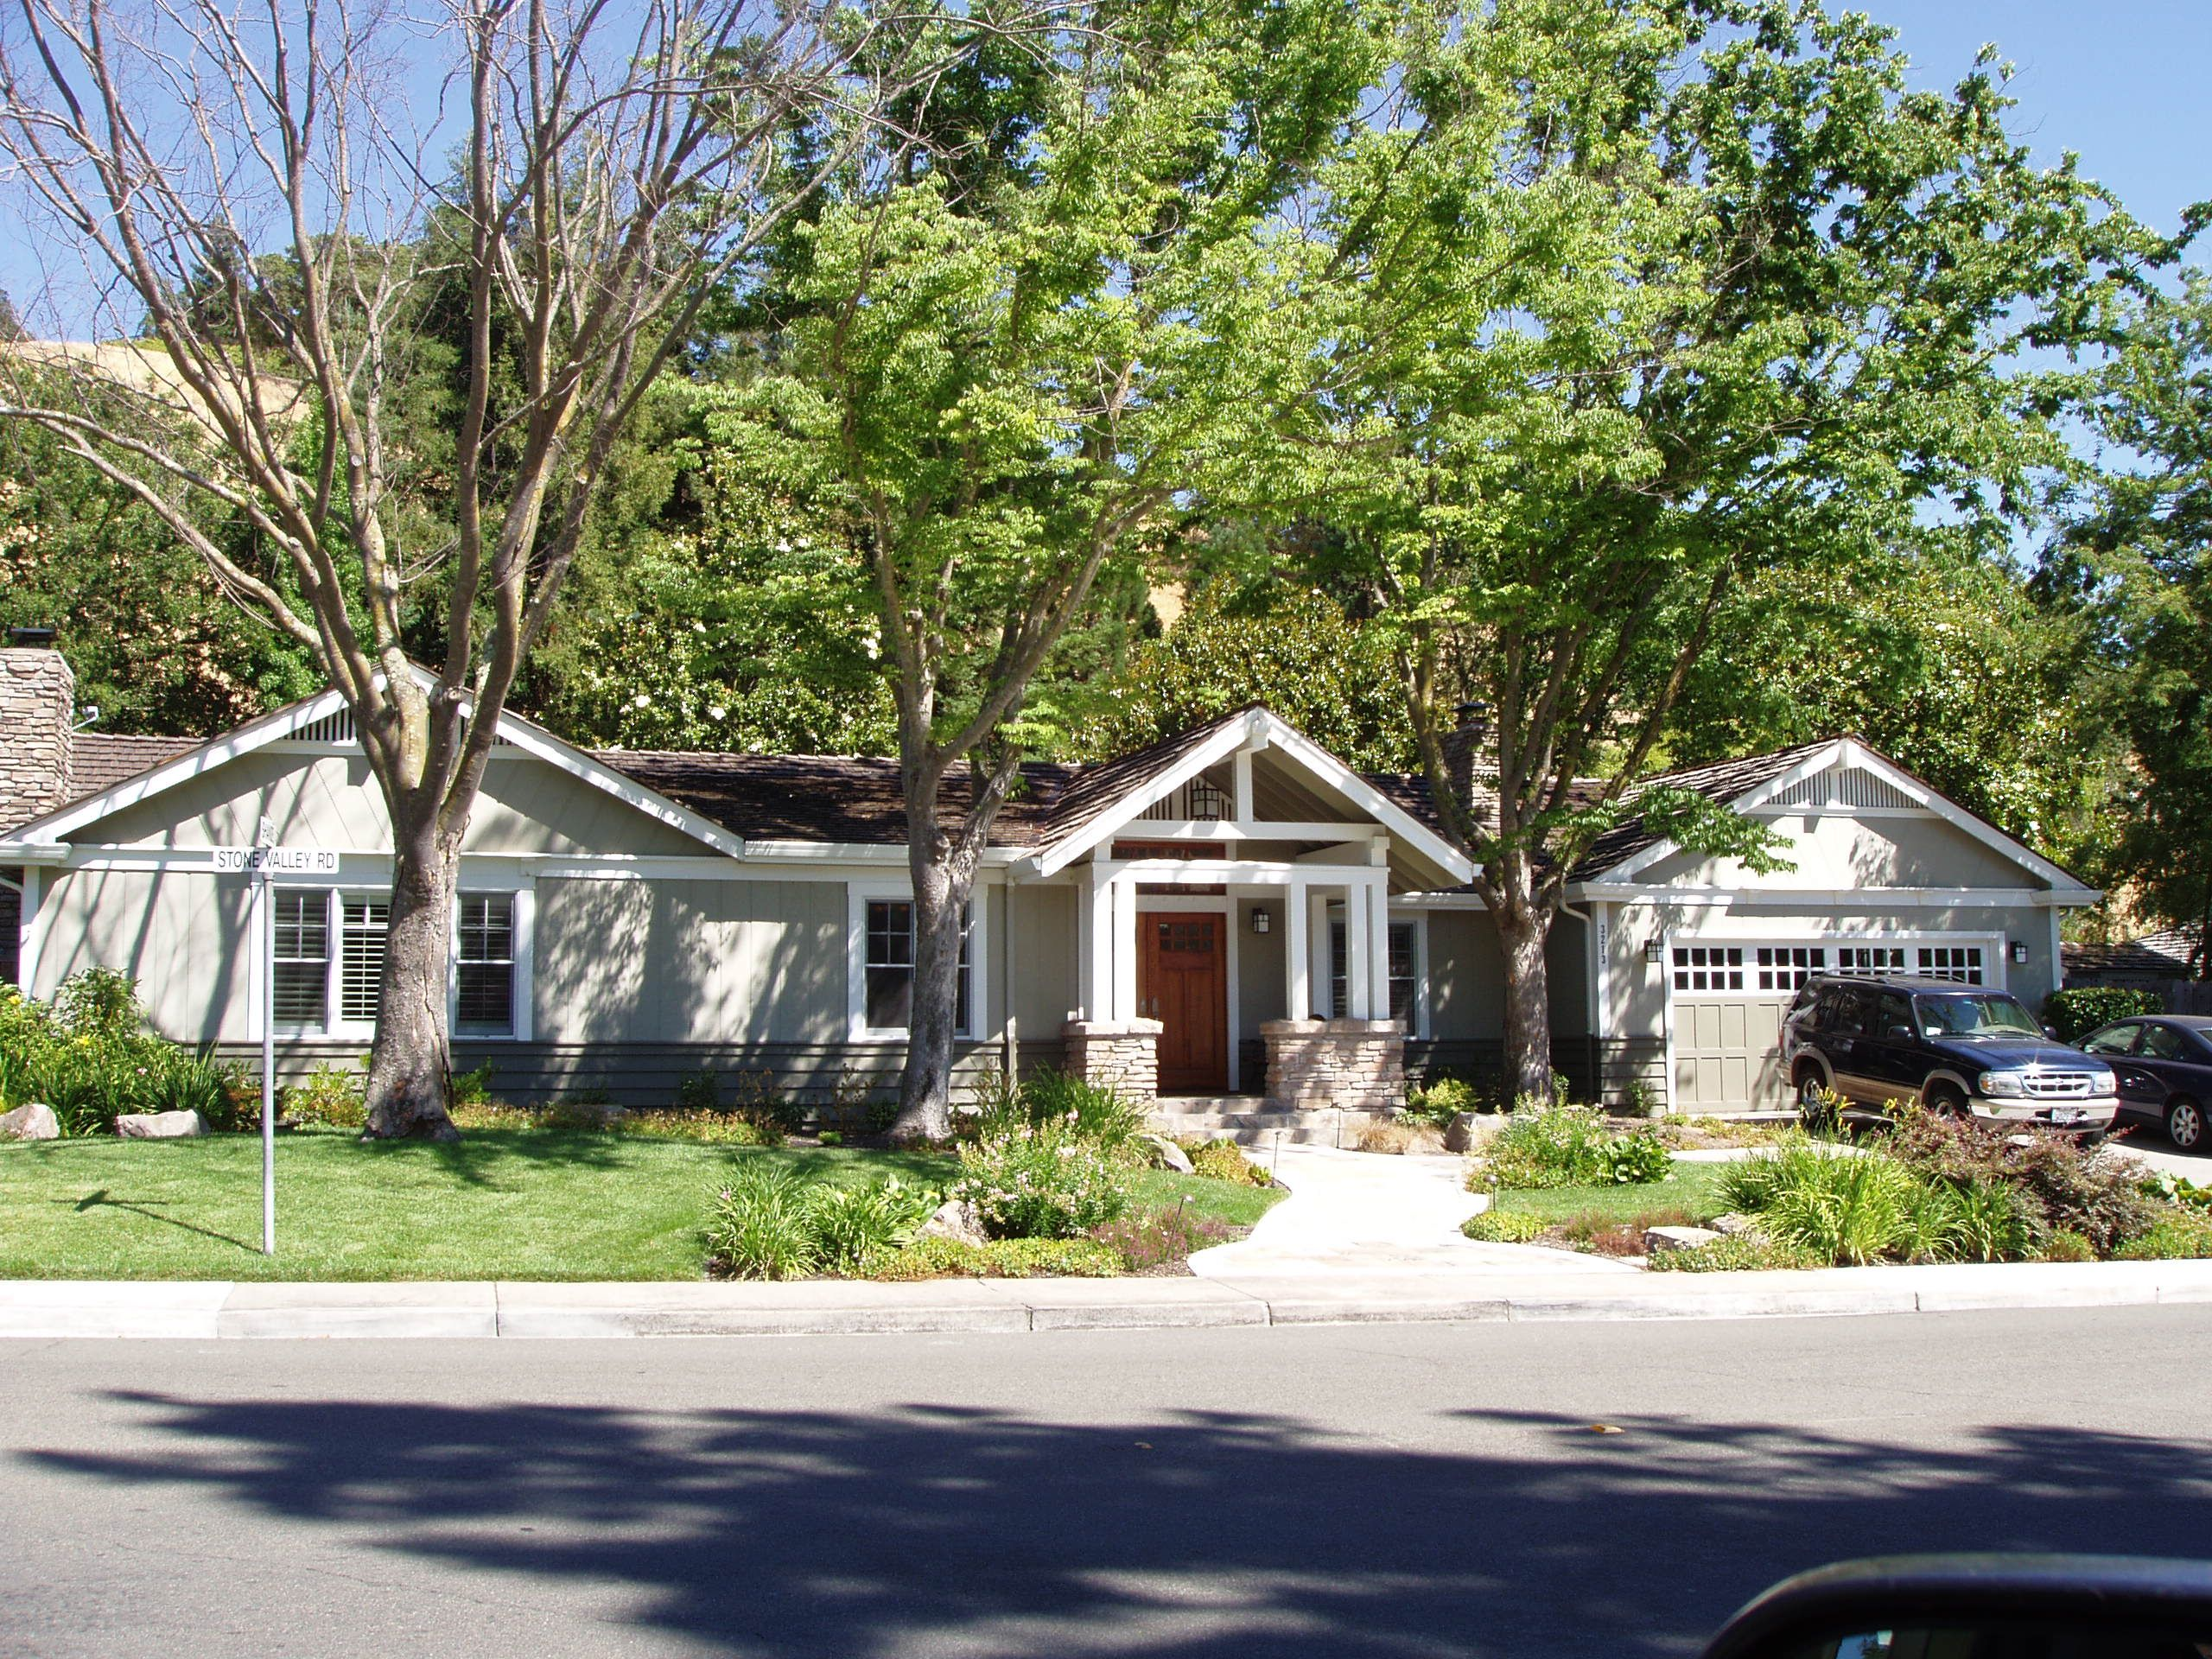 My clients Craftmans style rancher home. Love the garage doors and porch. They stayed true to the look.